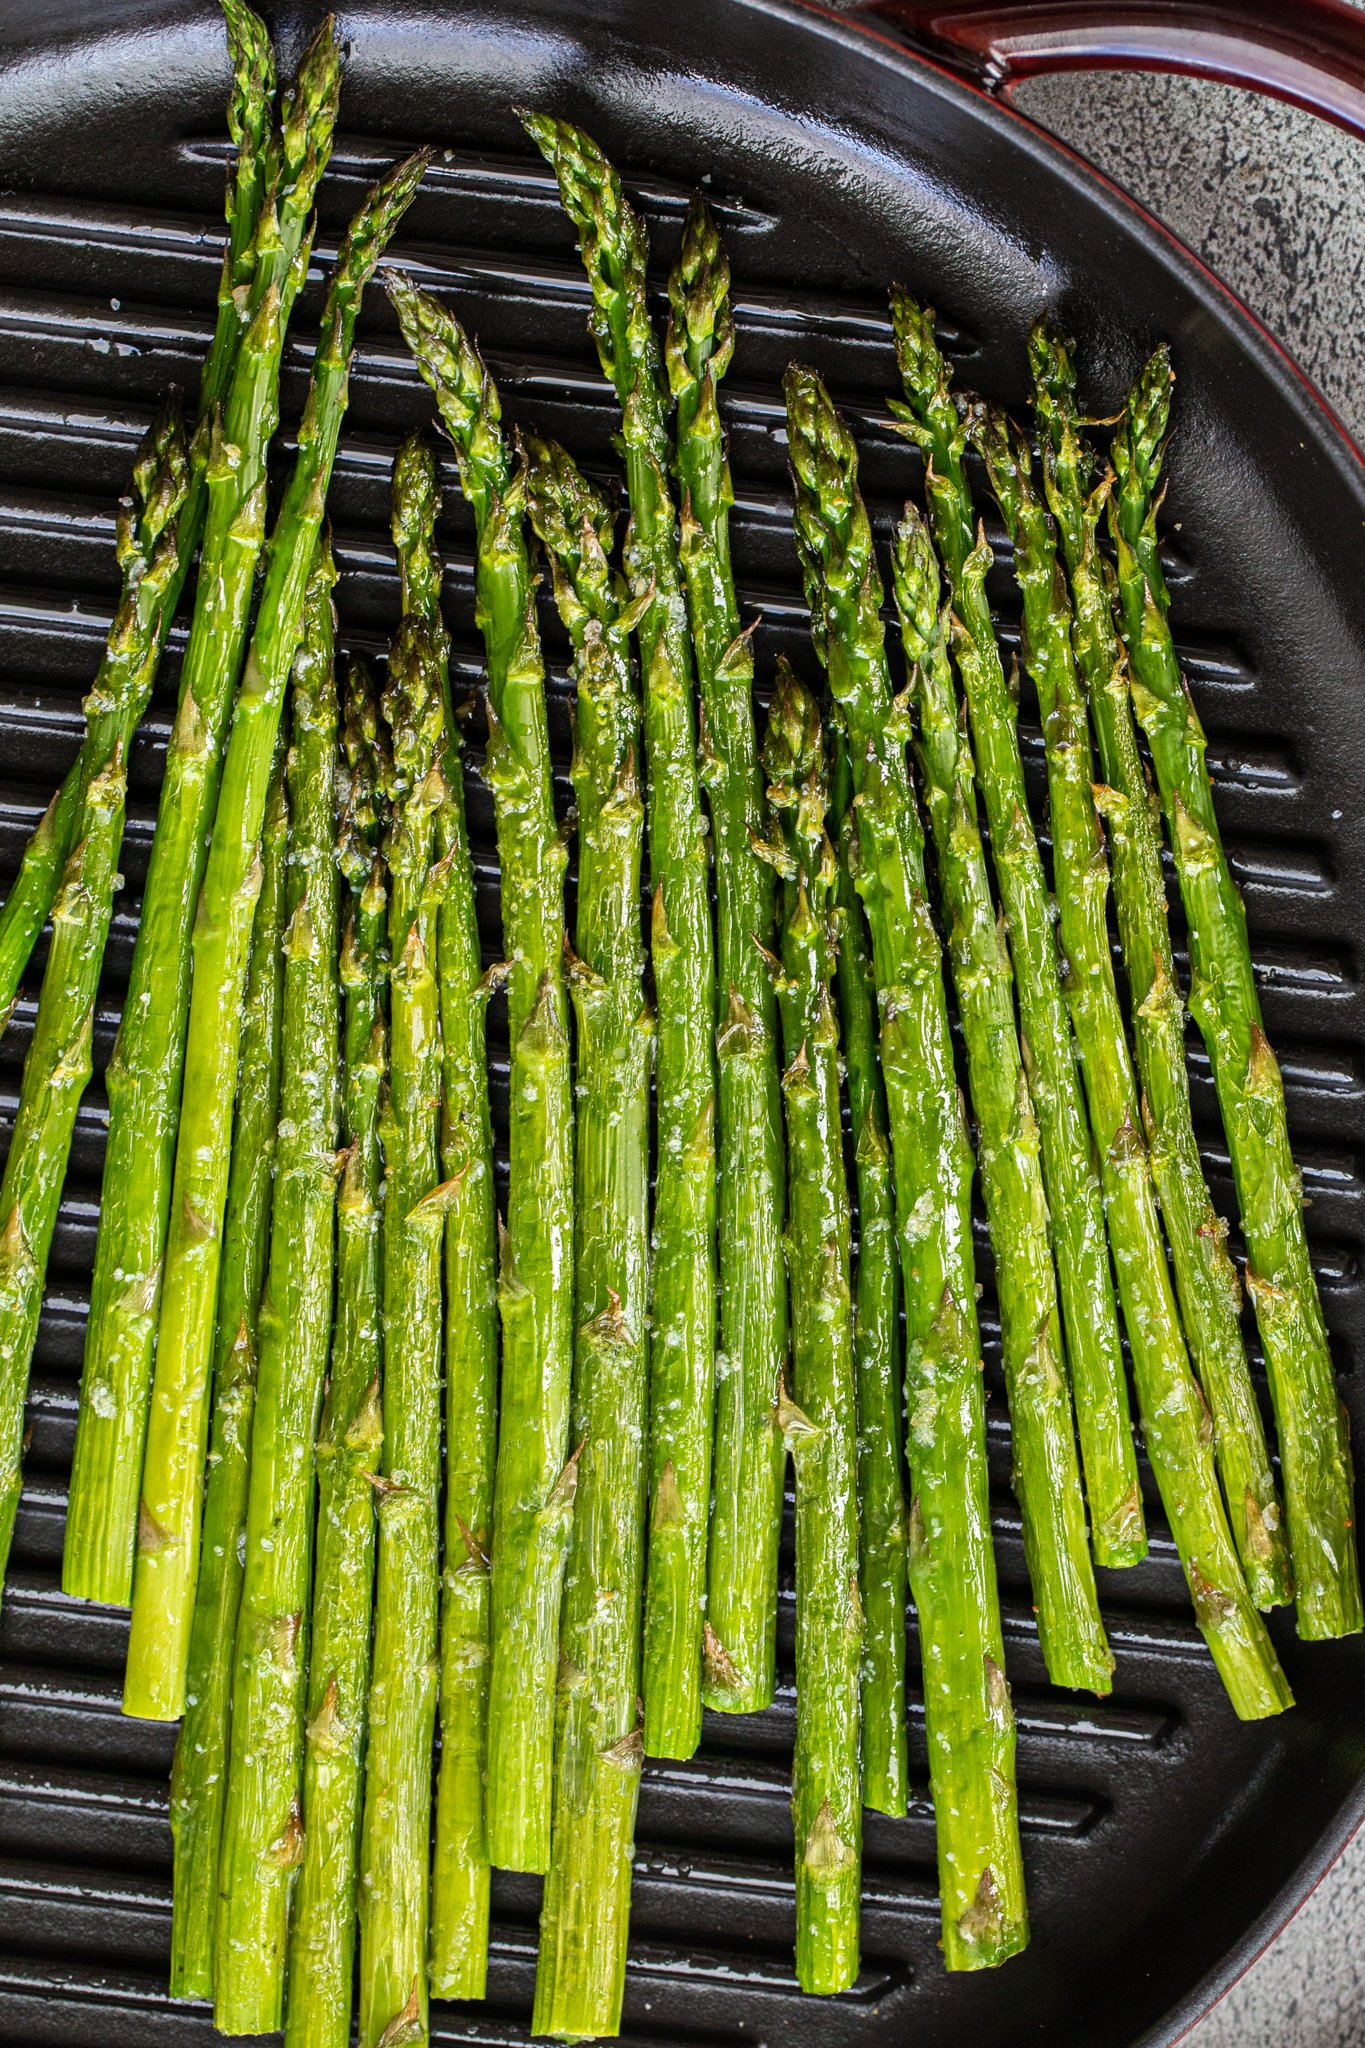 Roasted asparagus on a baking pan